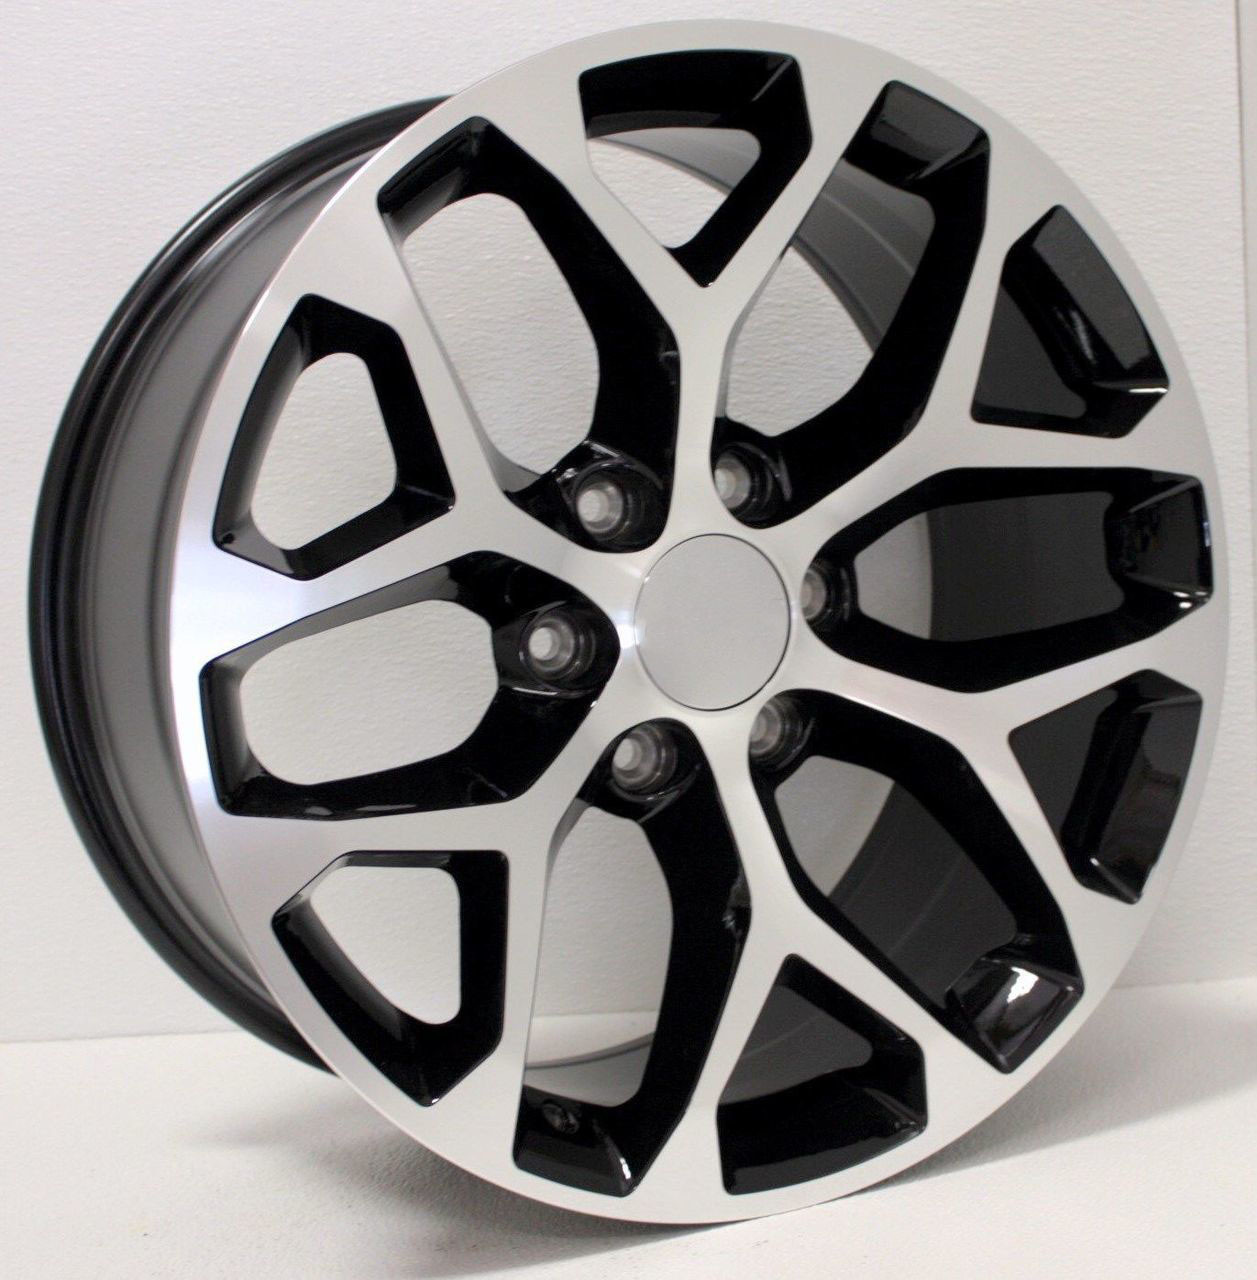 All Chevy black chevy rims : 22 Inch Black and Machine Snowflake Rims for Chevy Silverado ...